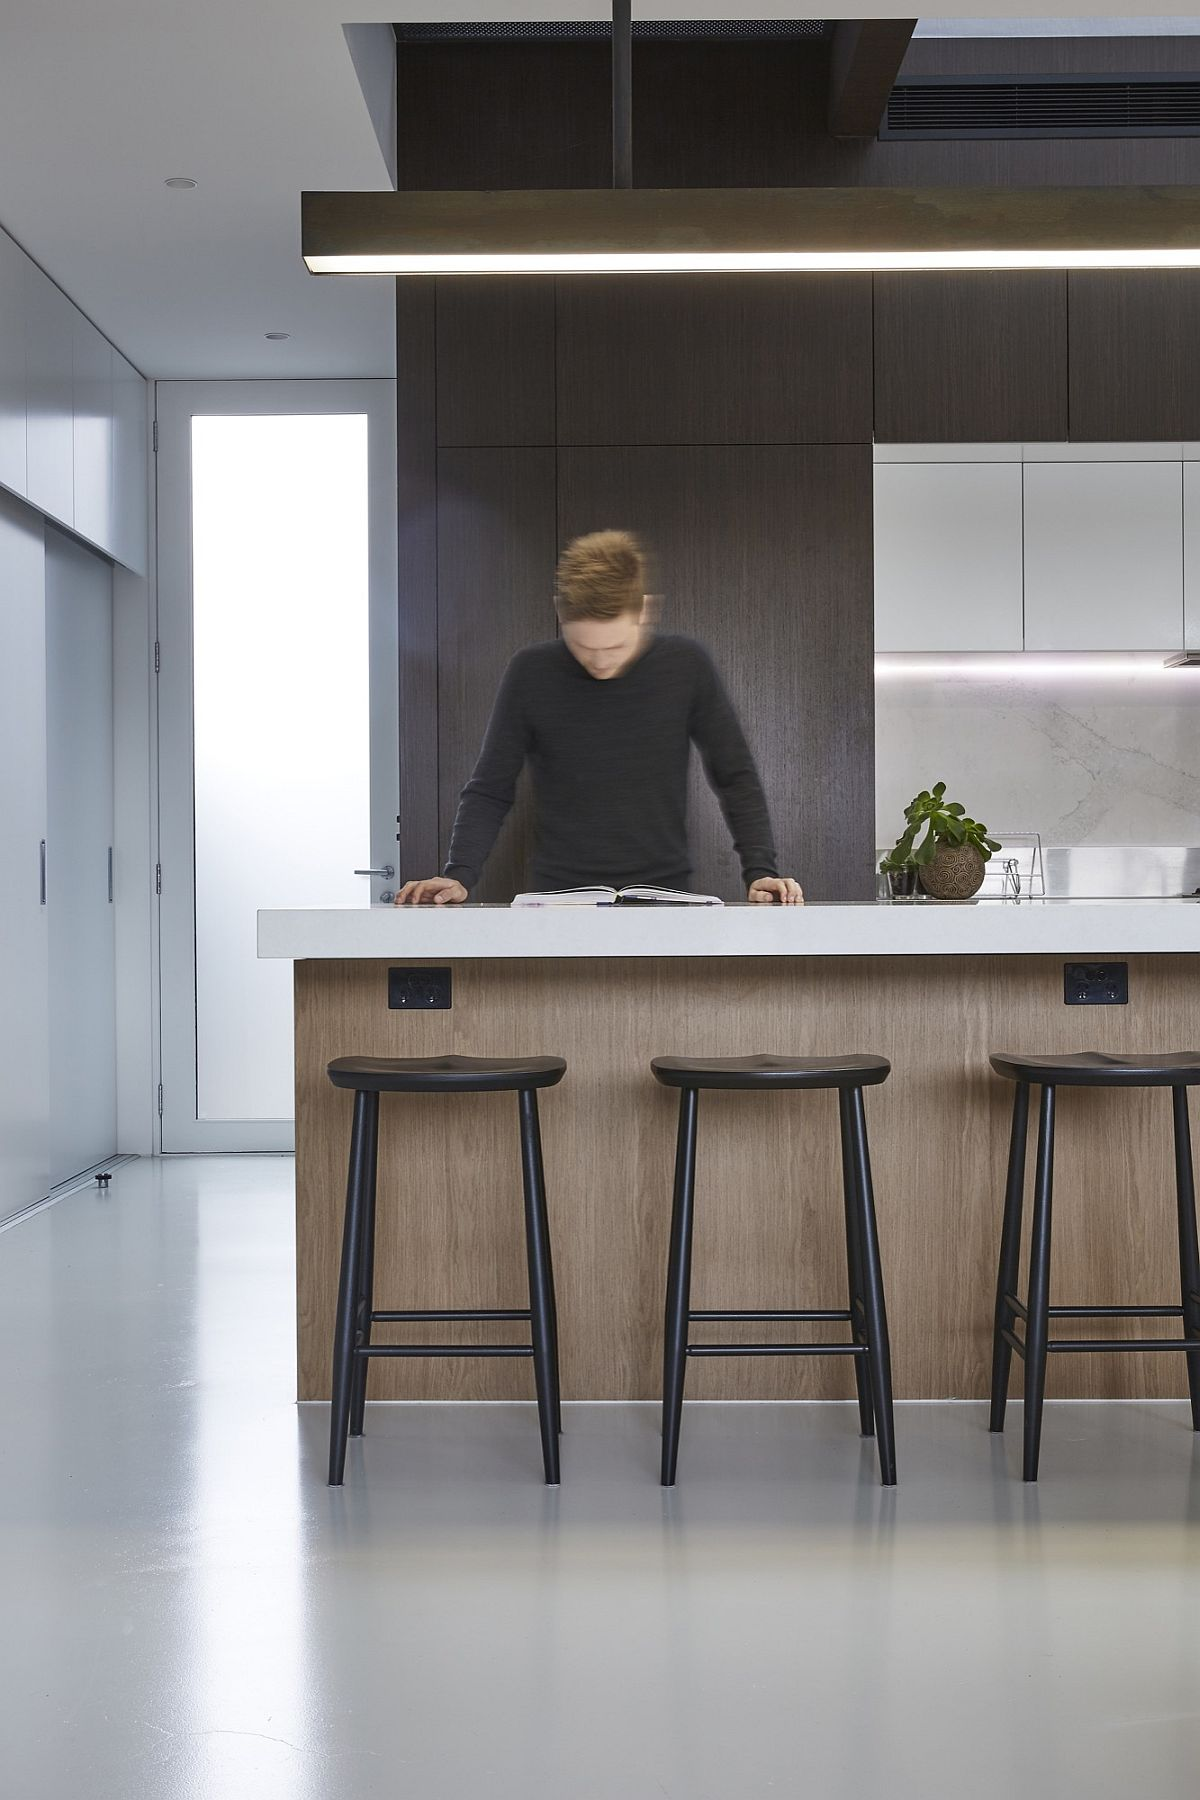 Sleek and polished kitchen in wood and gray